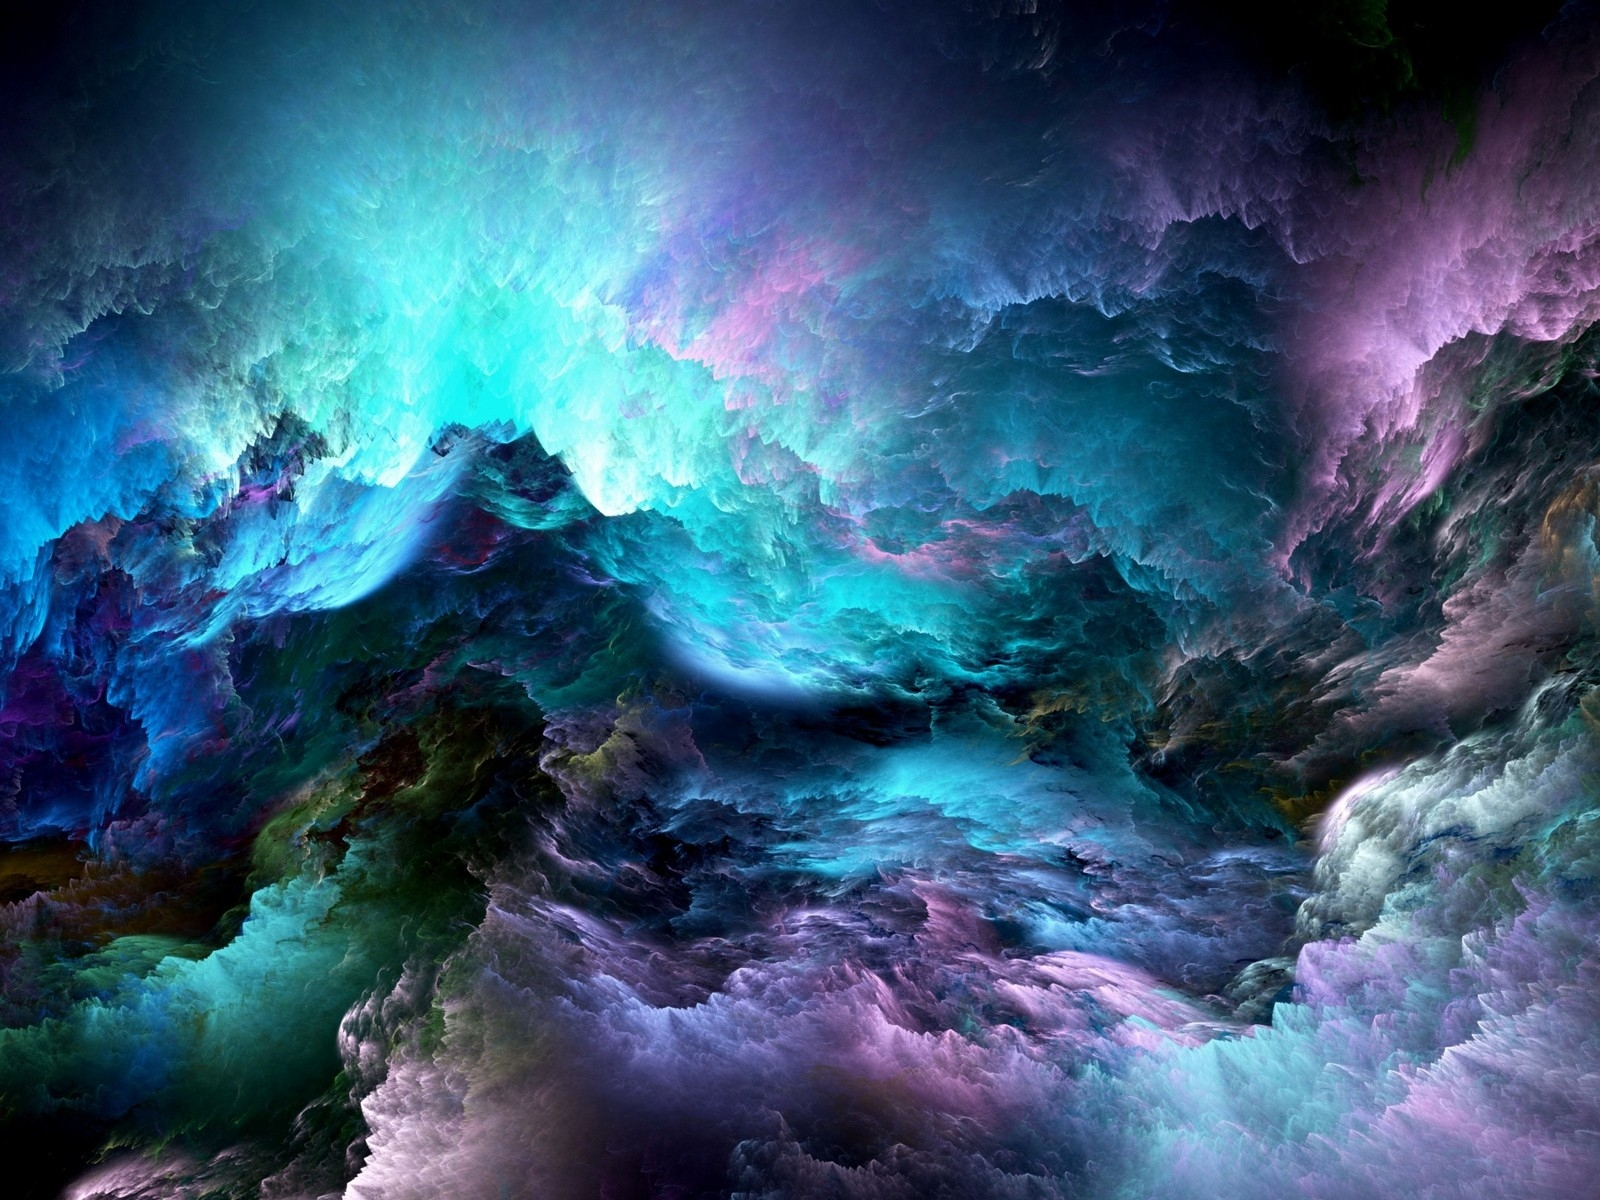 Abstract Colorful Clouds for 1600 x 1200 resolution